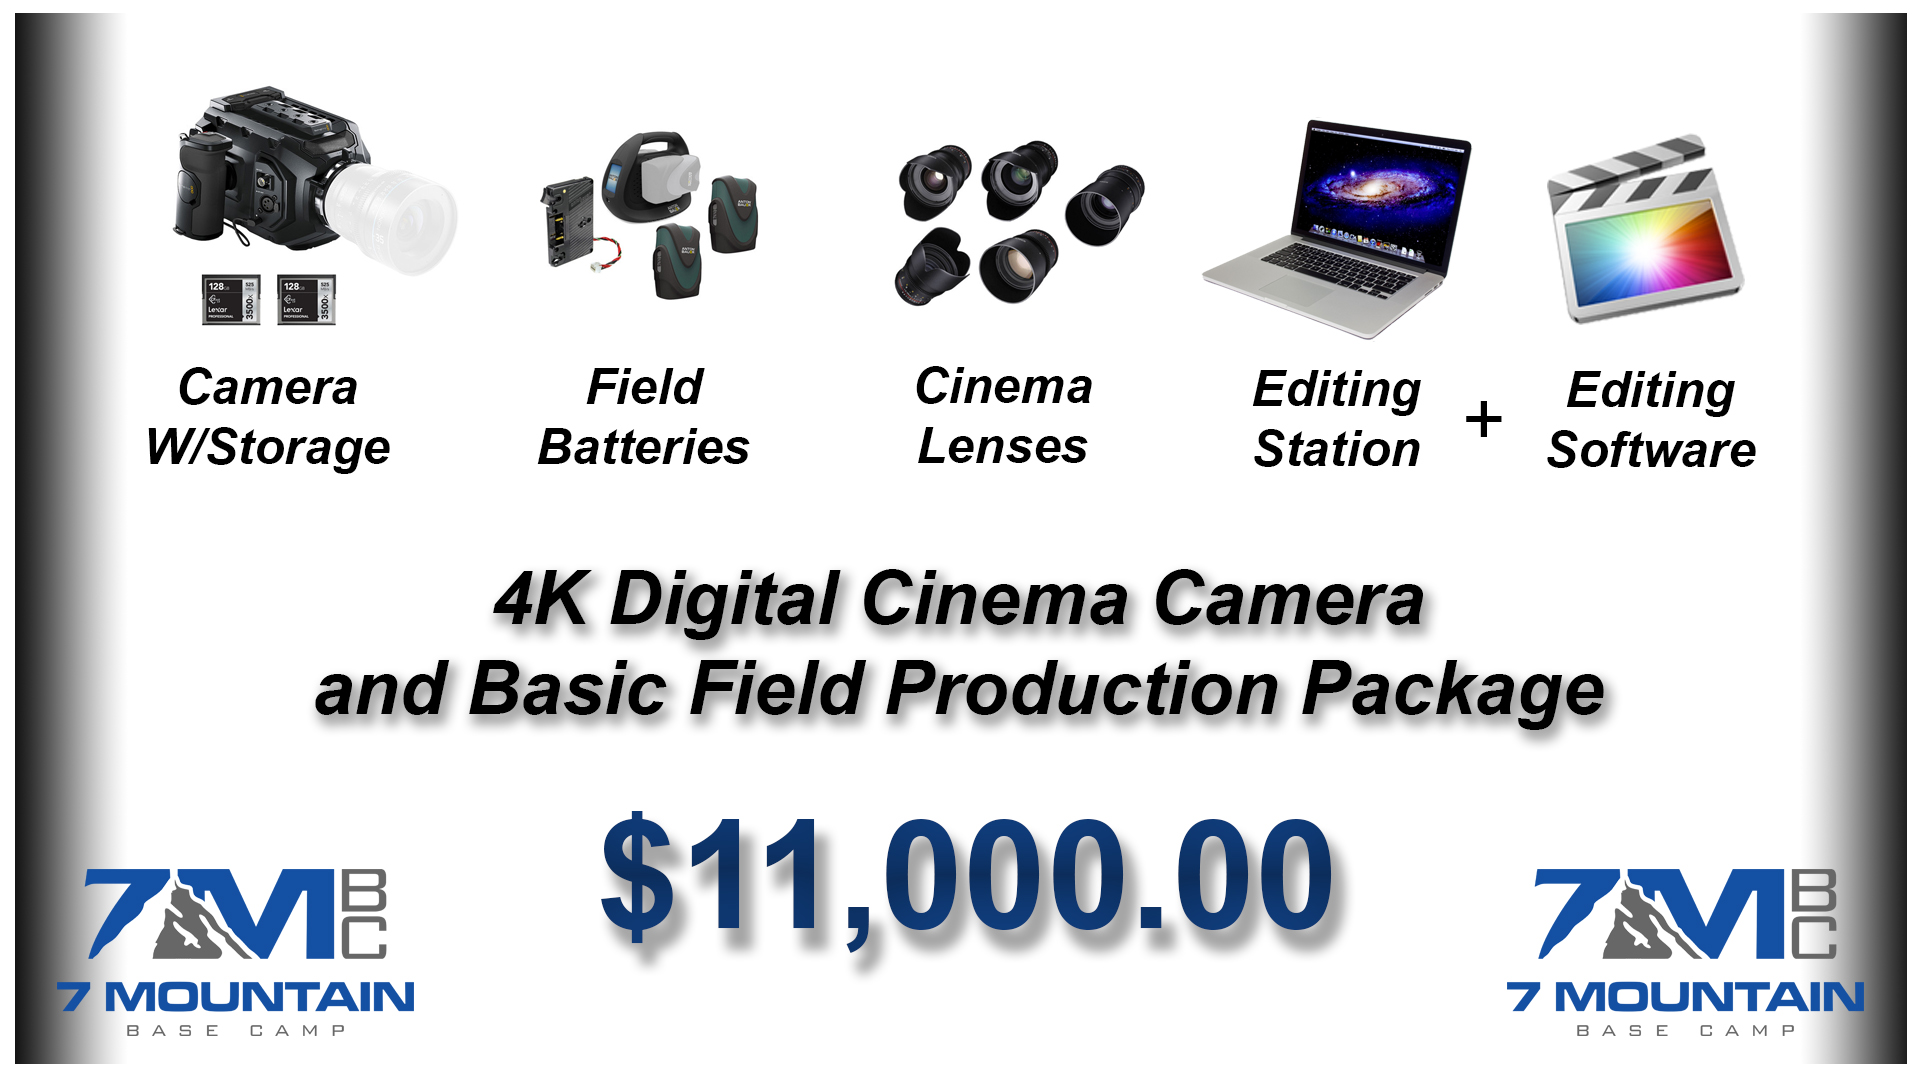 Production Package